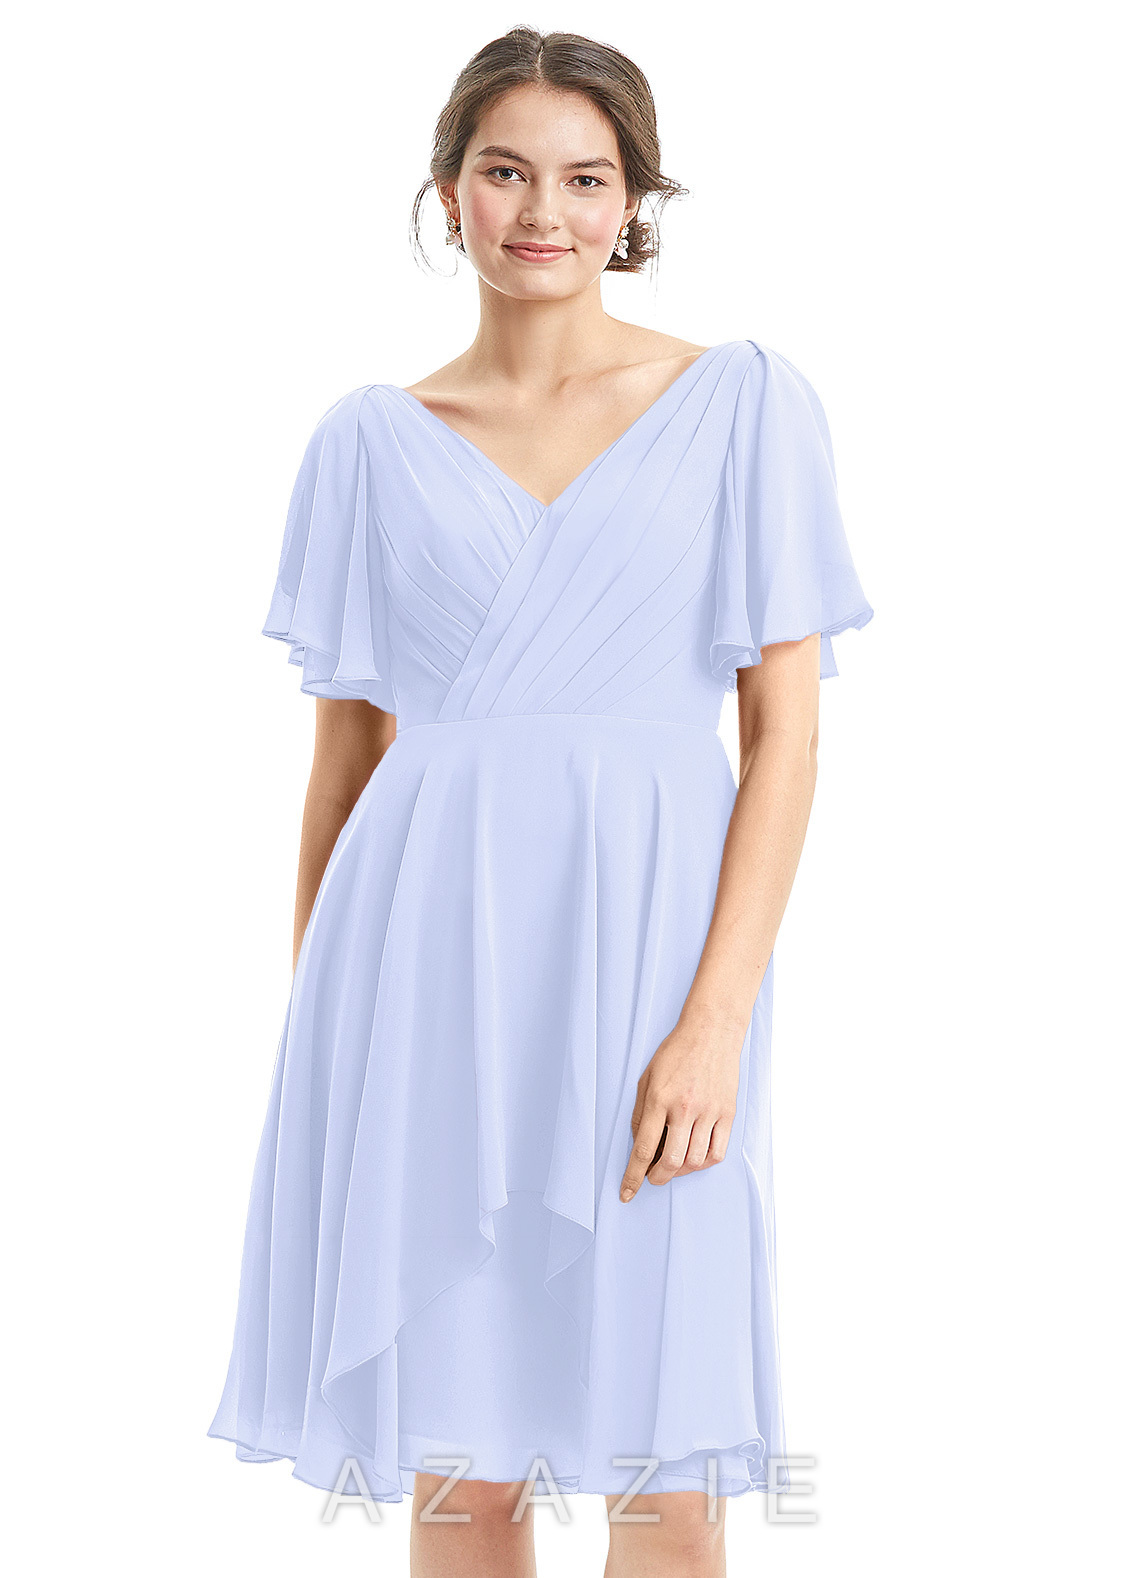 025833a2b8bb3 Azazie Ayana Bridesmaid Dress | Azazie